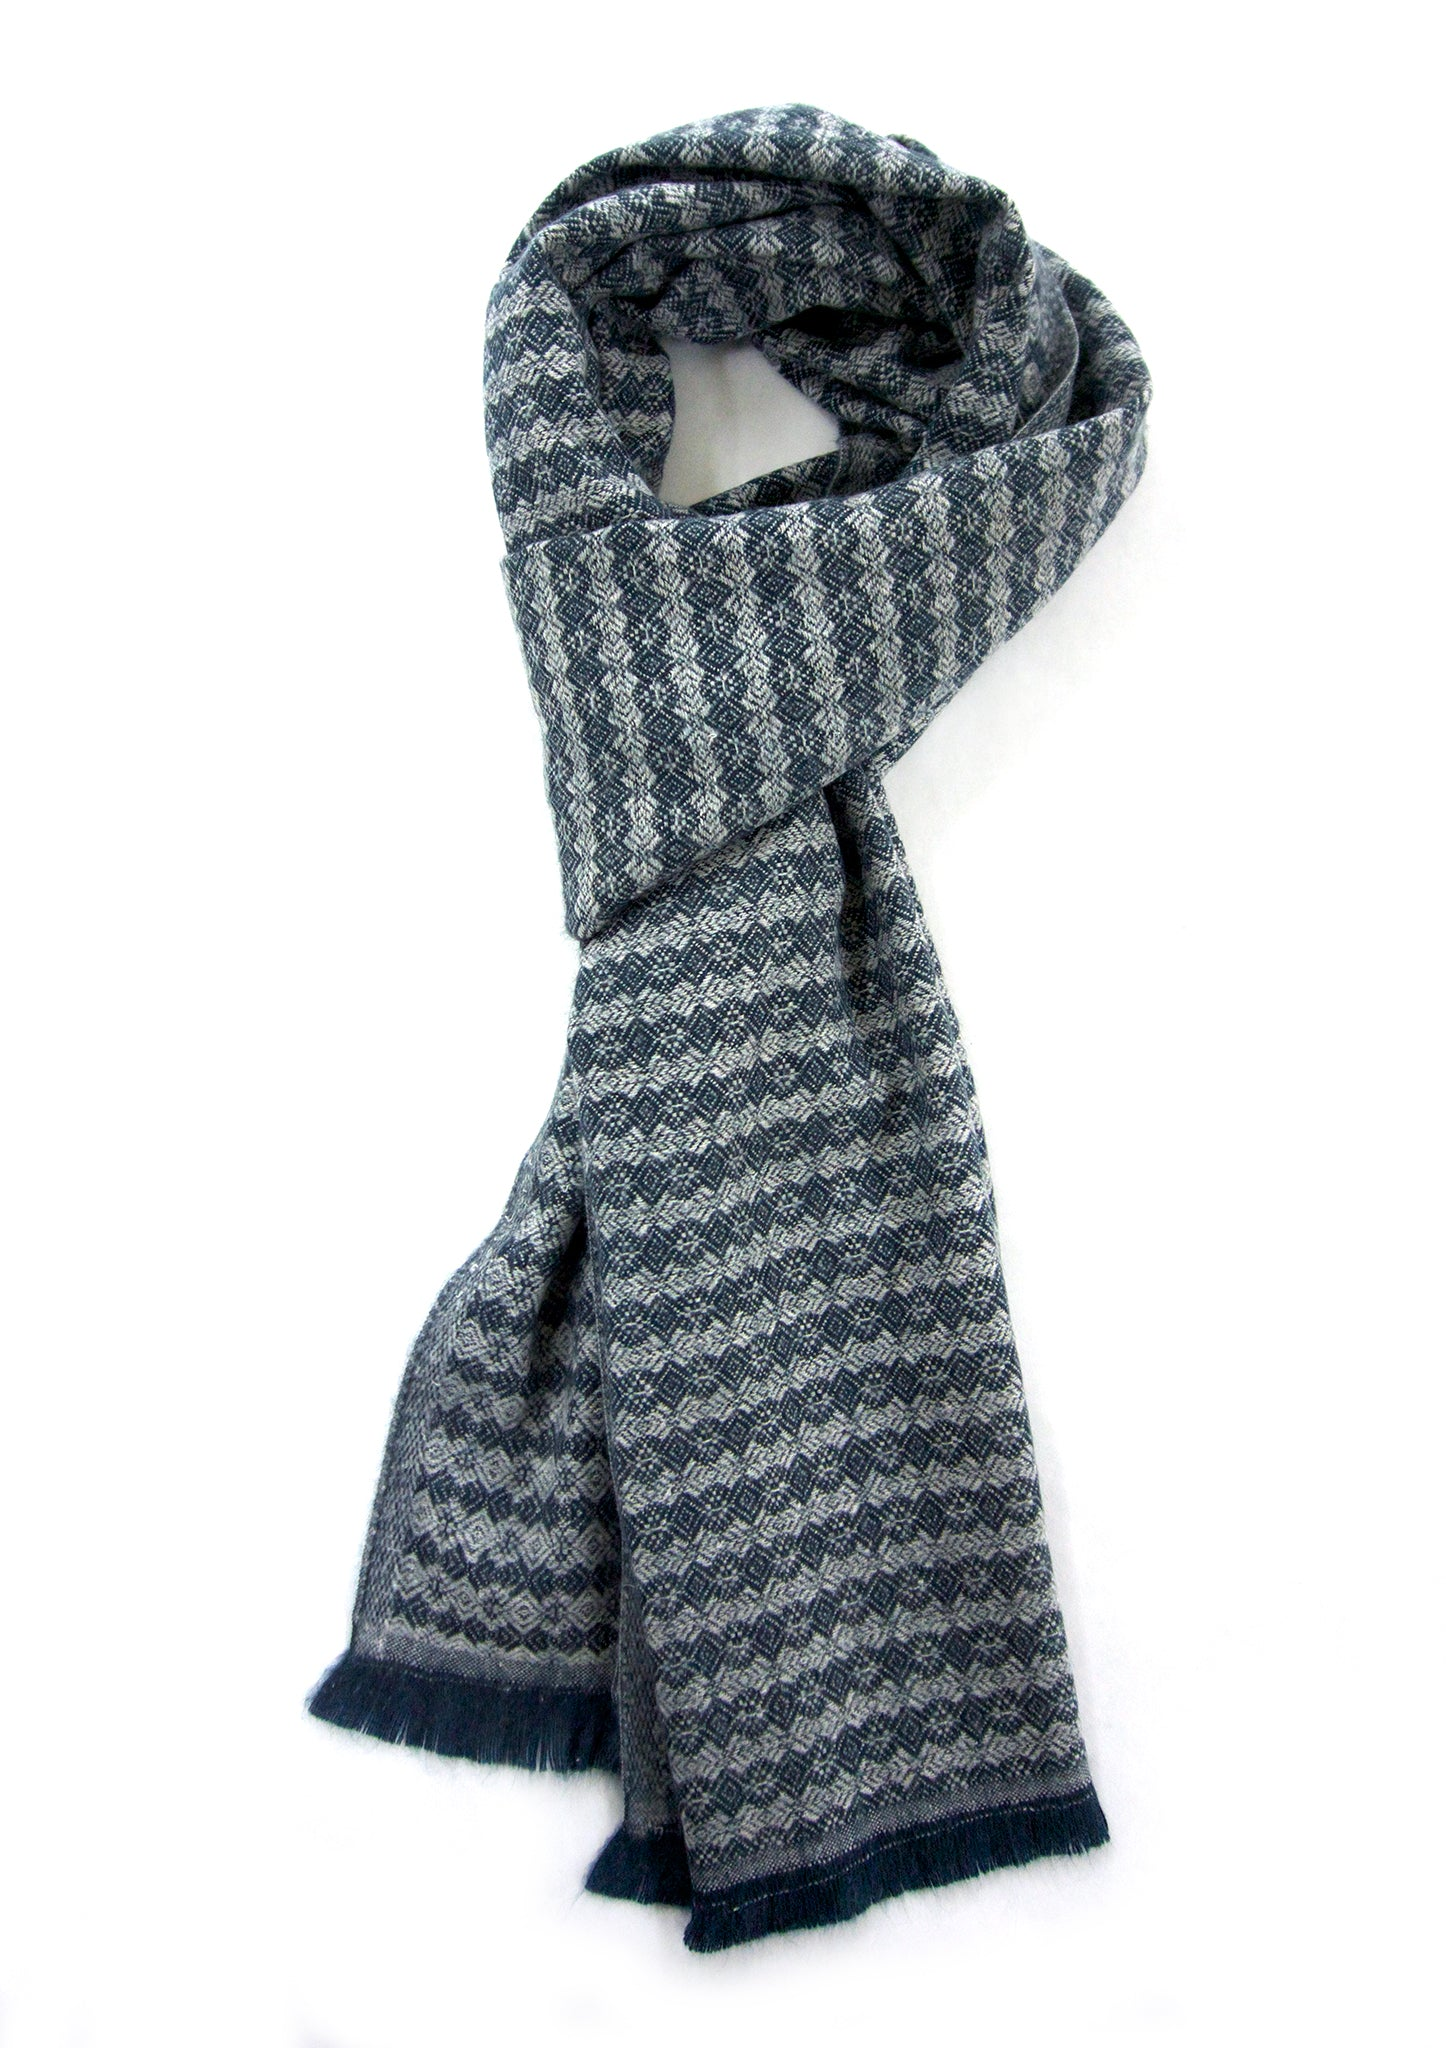 Soft cashmere blend scarf with fancy striped pattern in navy and off white - Marie-Pierre Rousseau